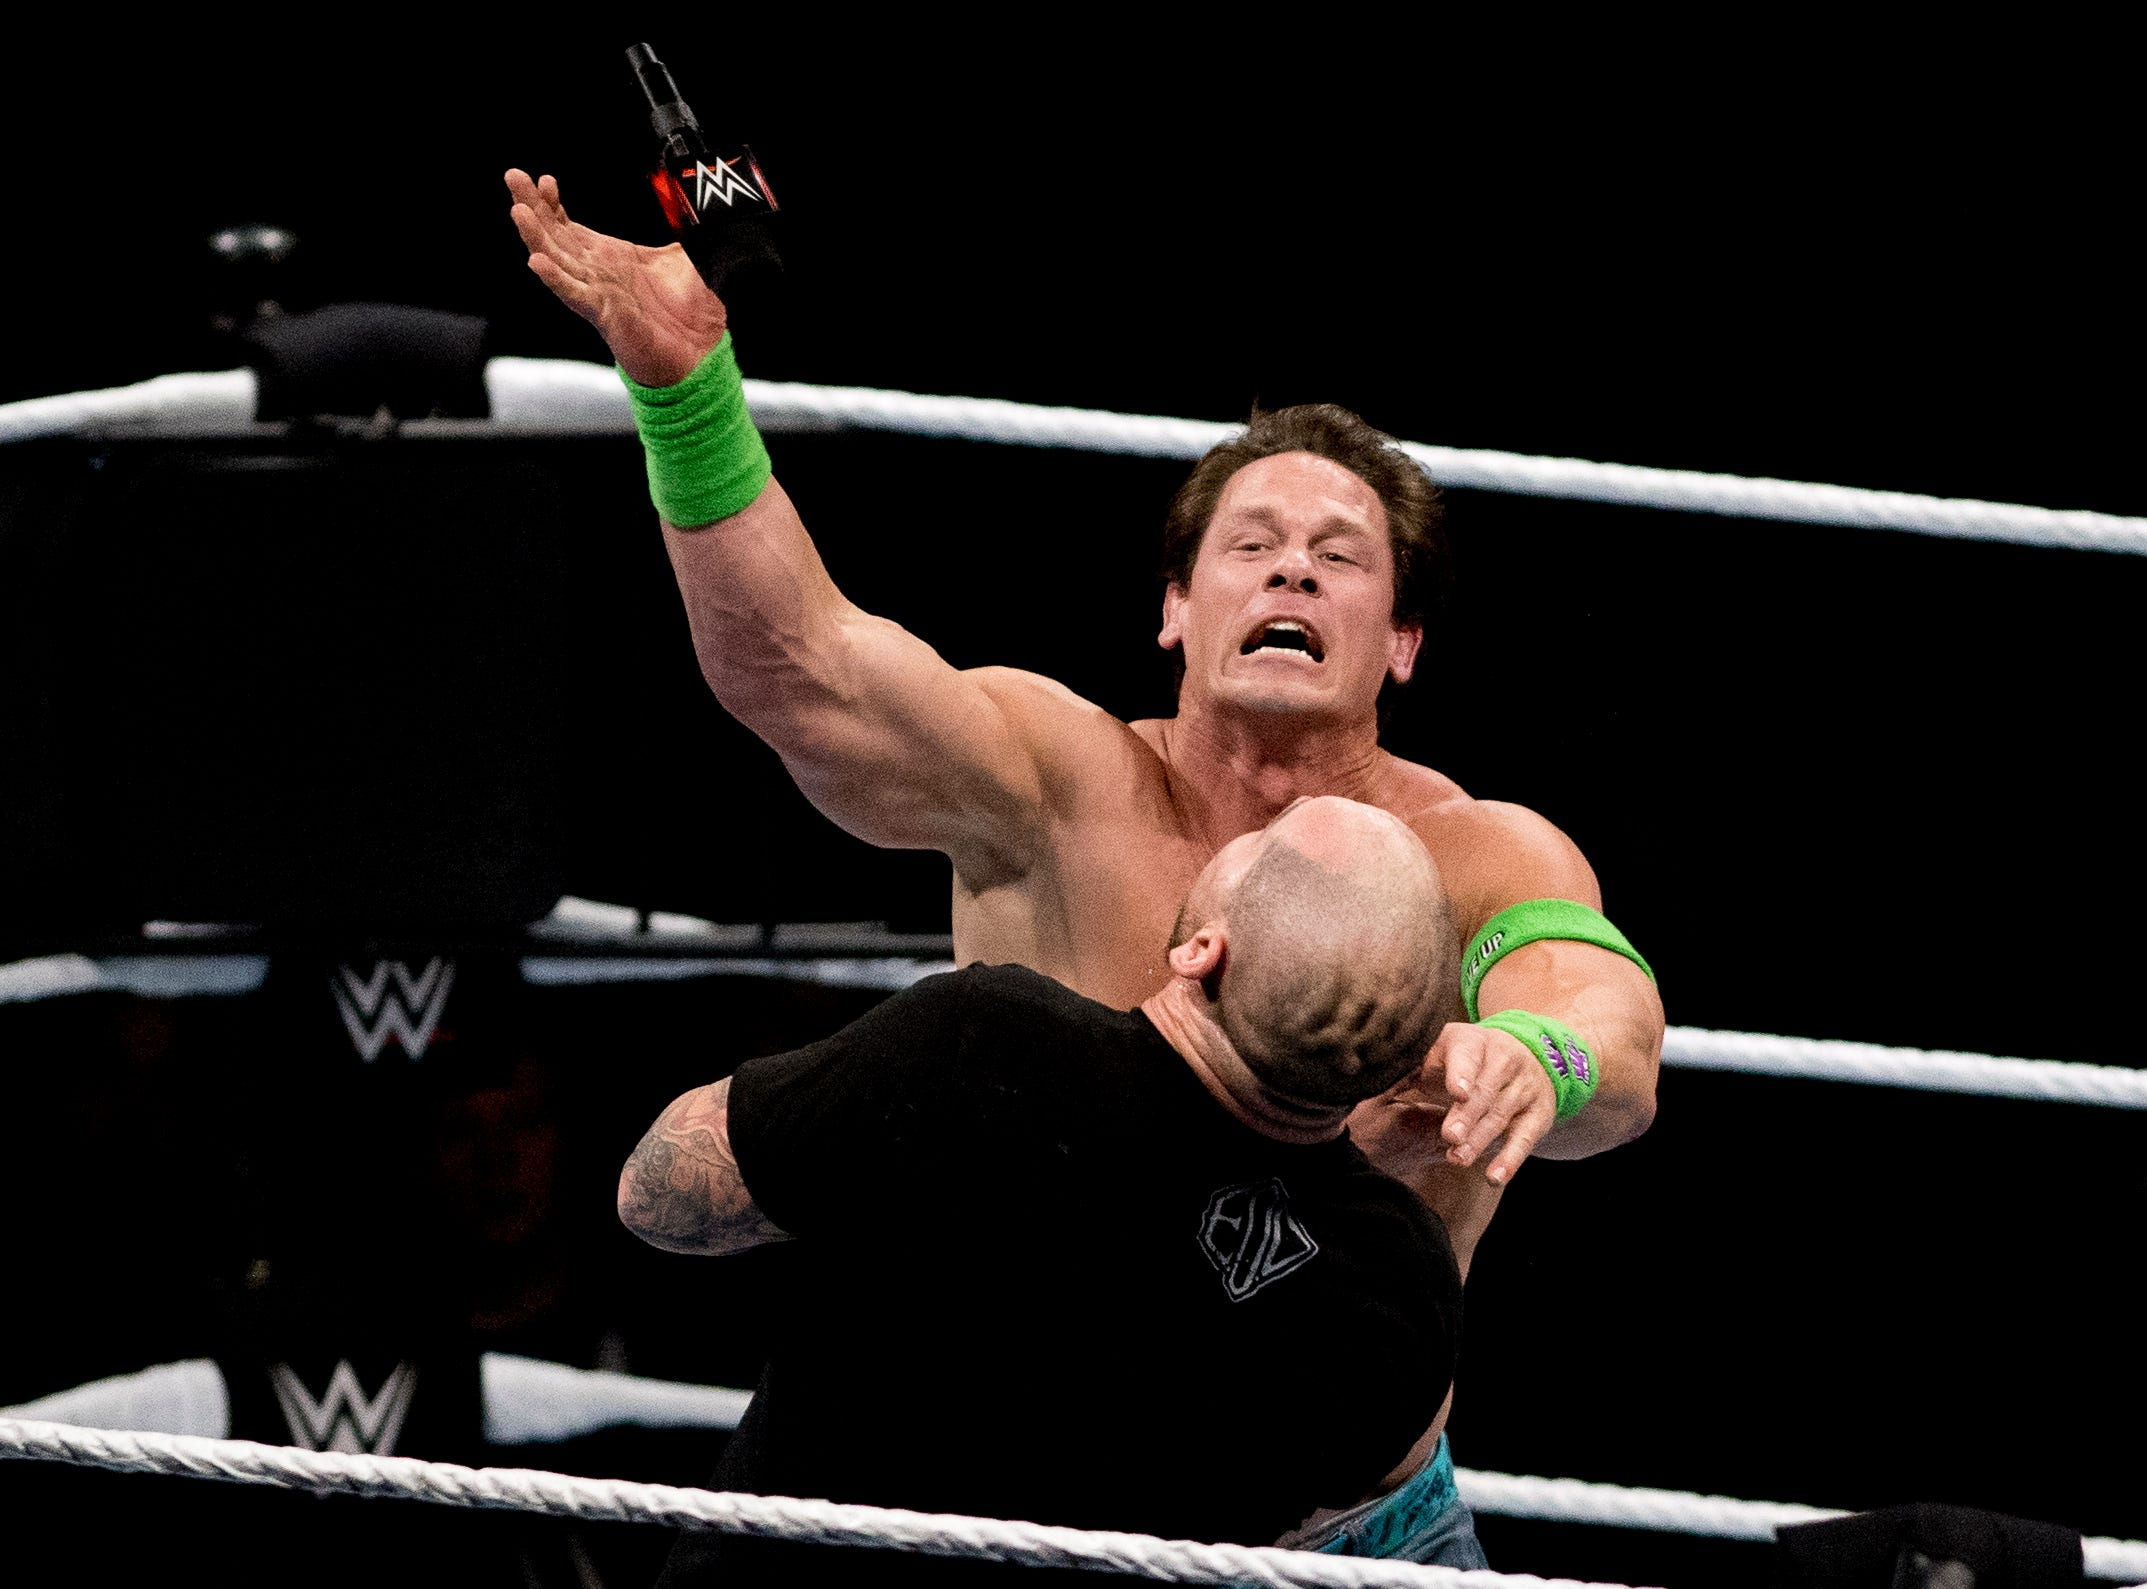 John Cena hits Baron Corbin with a microphone during a WWE Live performance at the Knoxville Civic Coliseum in Knoxville, Tennessee on Saturday, January 12, 2019. *KNOXVILLE NEWS SENTINEL USE ONLY*